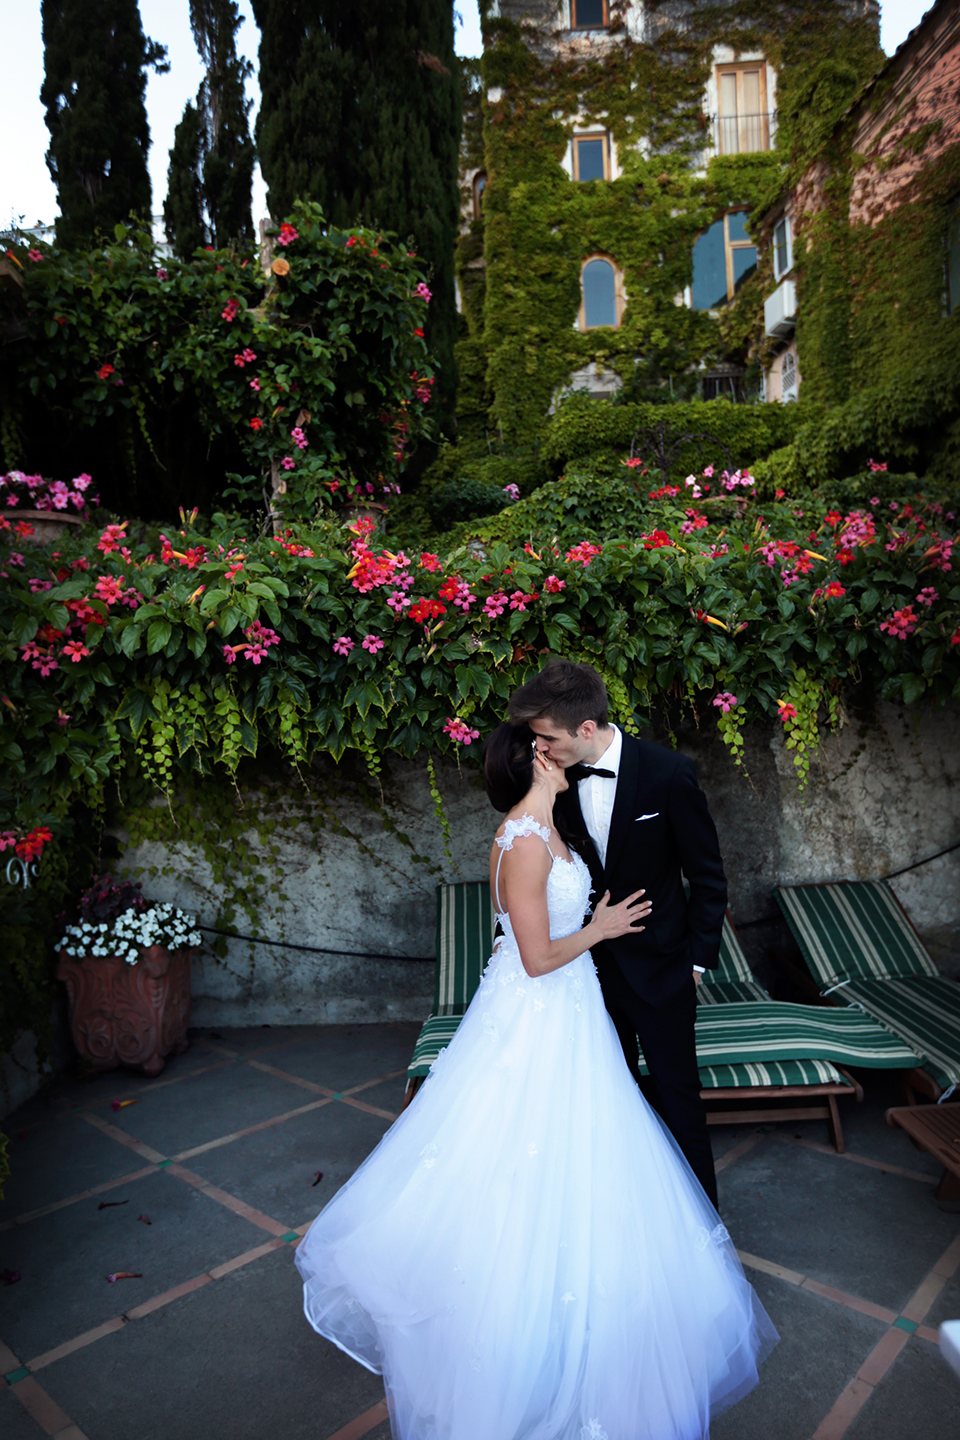 positano-weddin-photographers-italy-wedding-photographers-destination-wedding-photographers-estilo-best-wedding-photographers-in-the-world-casper-bosman-wedding-gown-wedding-style-stylish-modern-wedding-photography-057.jpg